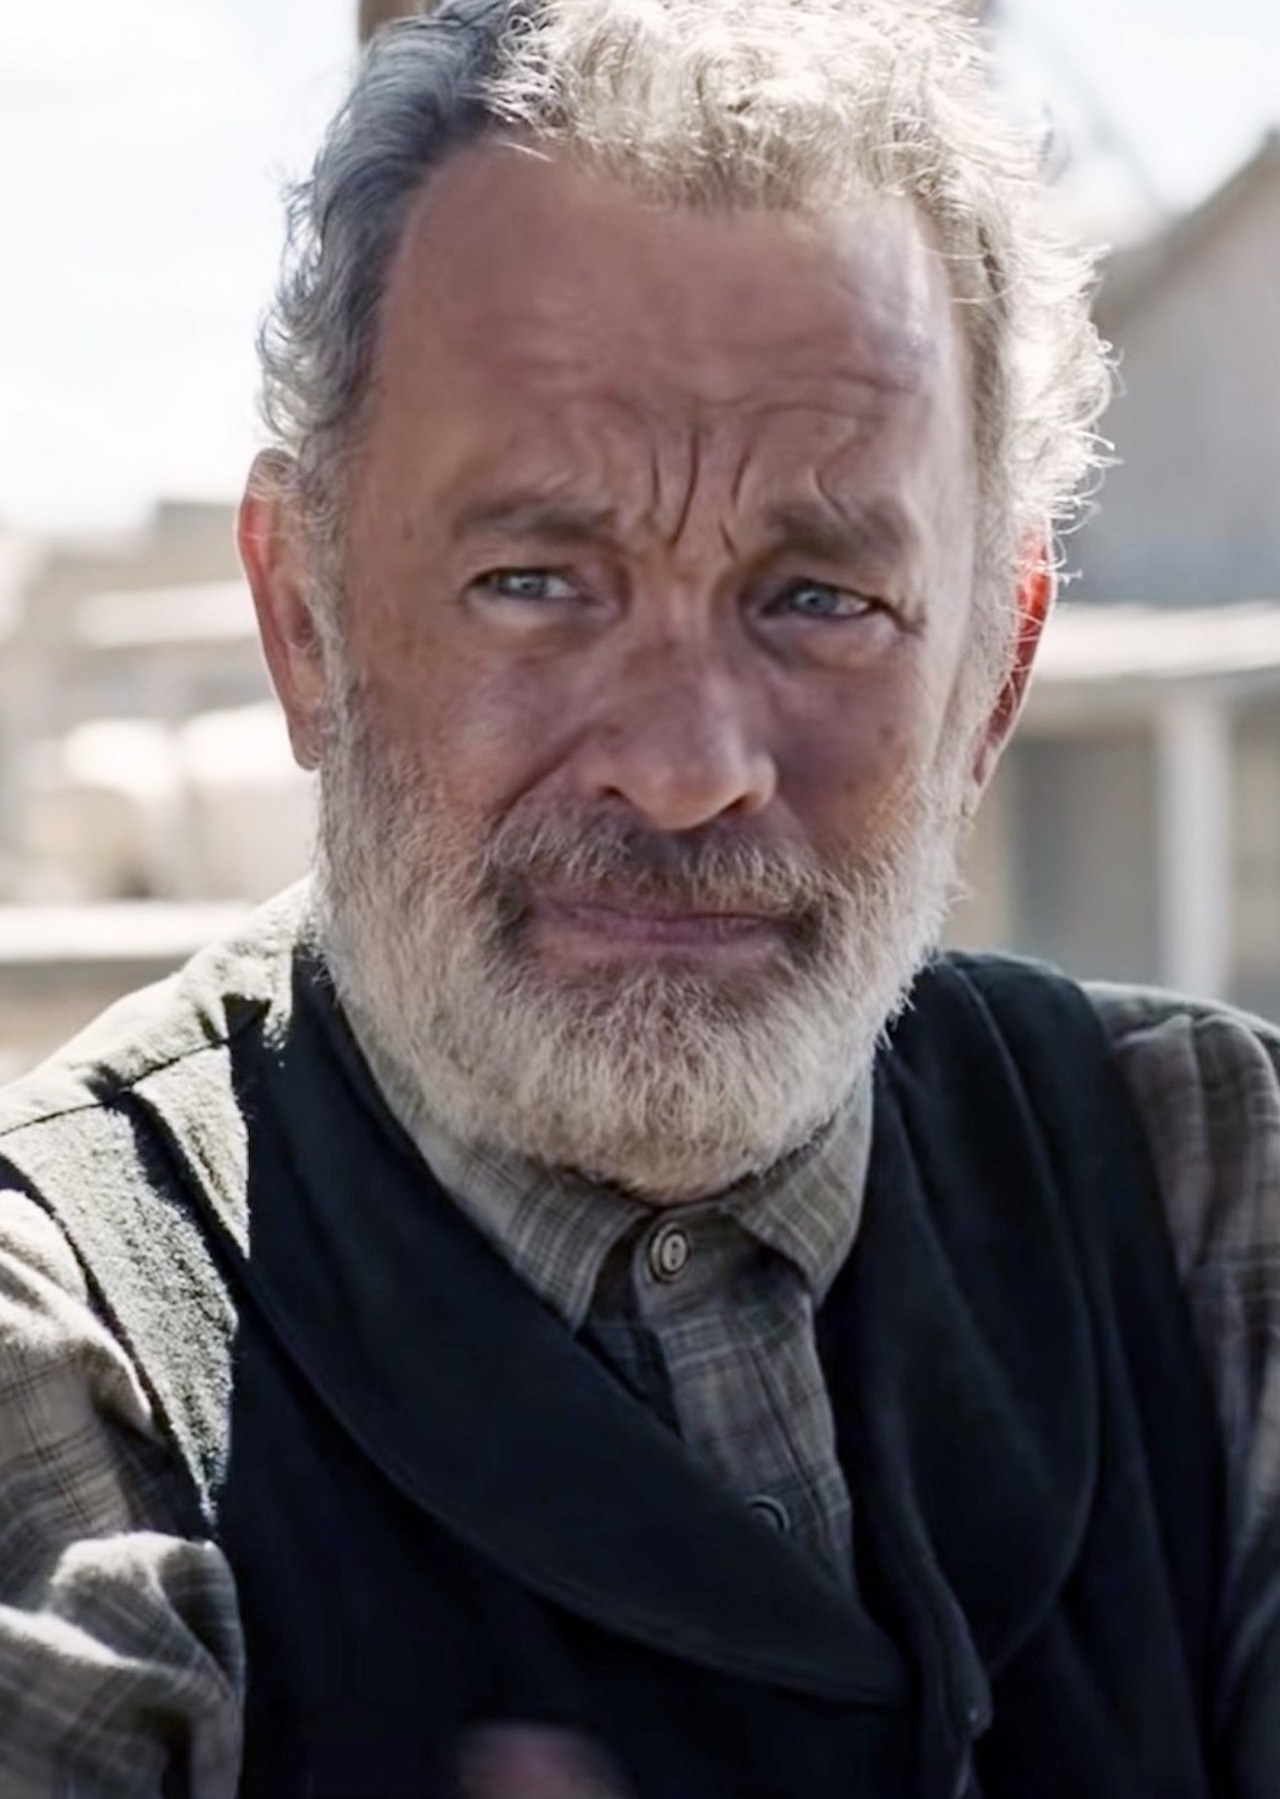 Tom Hanks with a grey beard, wearing a flannel shirt and sweater vest